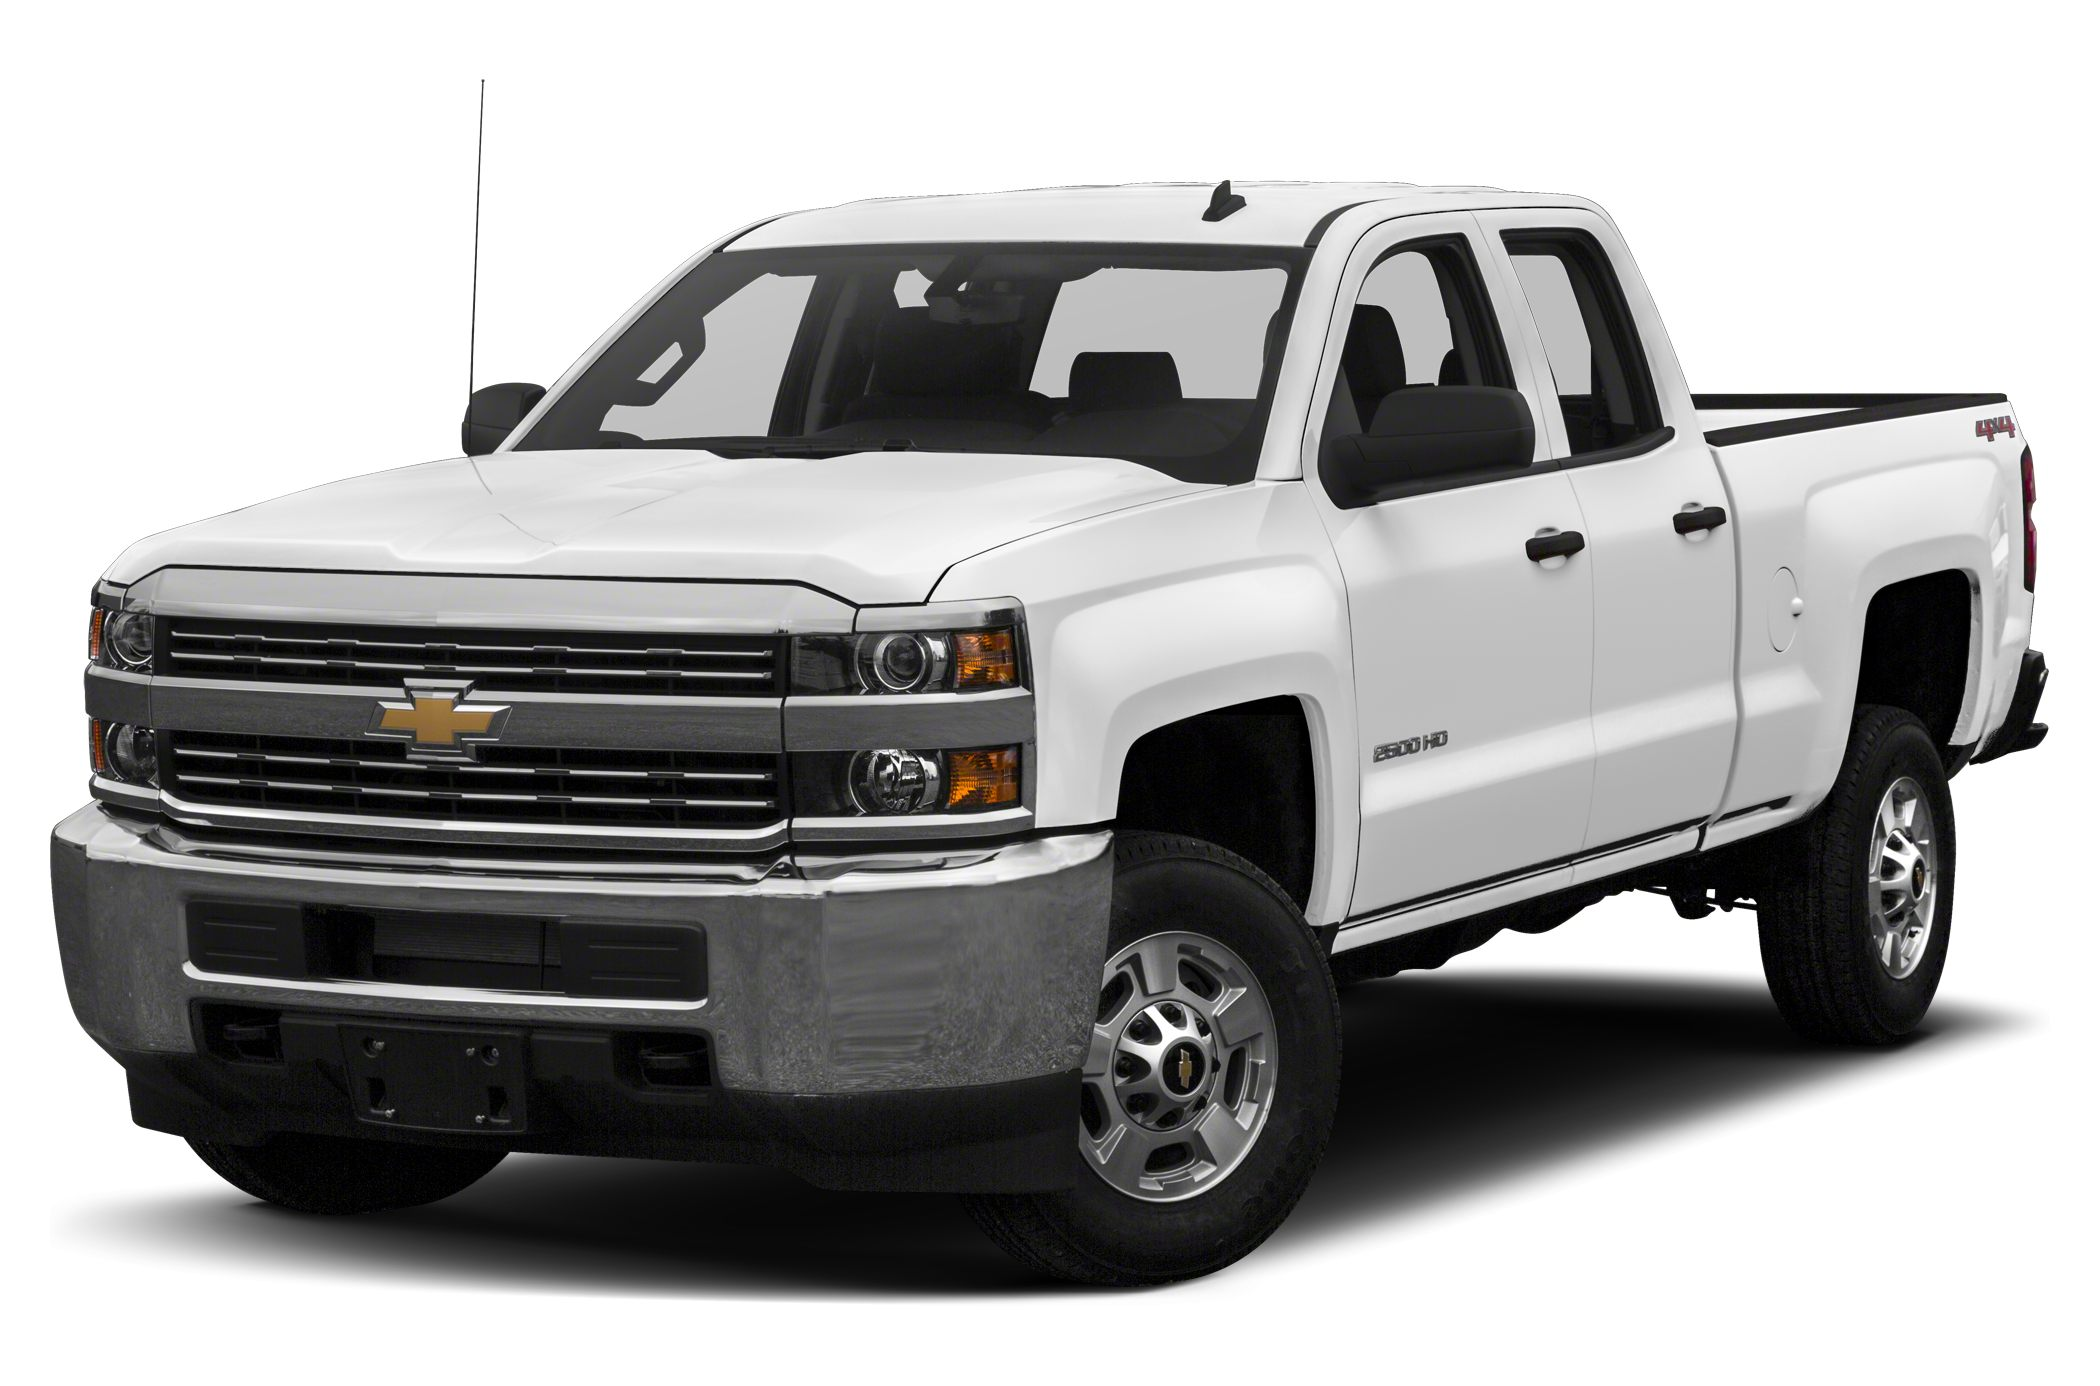 2015 Chevrolet Silverado 2500 LT Extended Cab Pickup for sale in Westfield for $41,955 with 0 miles